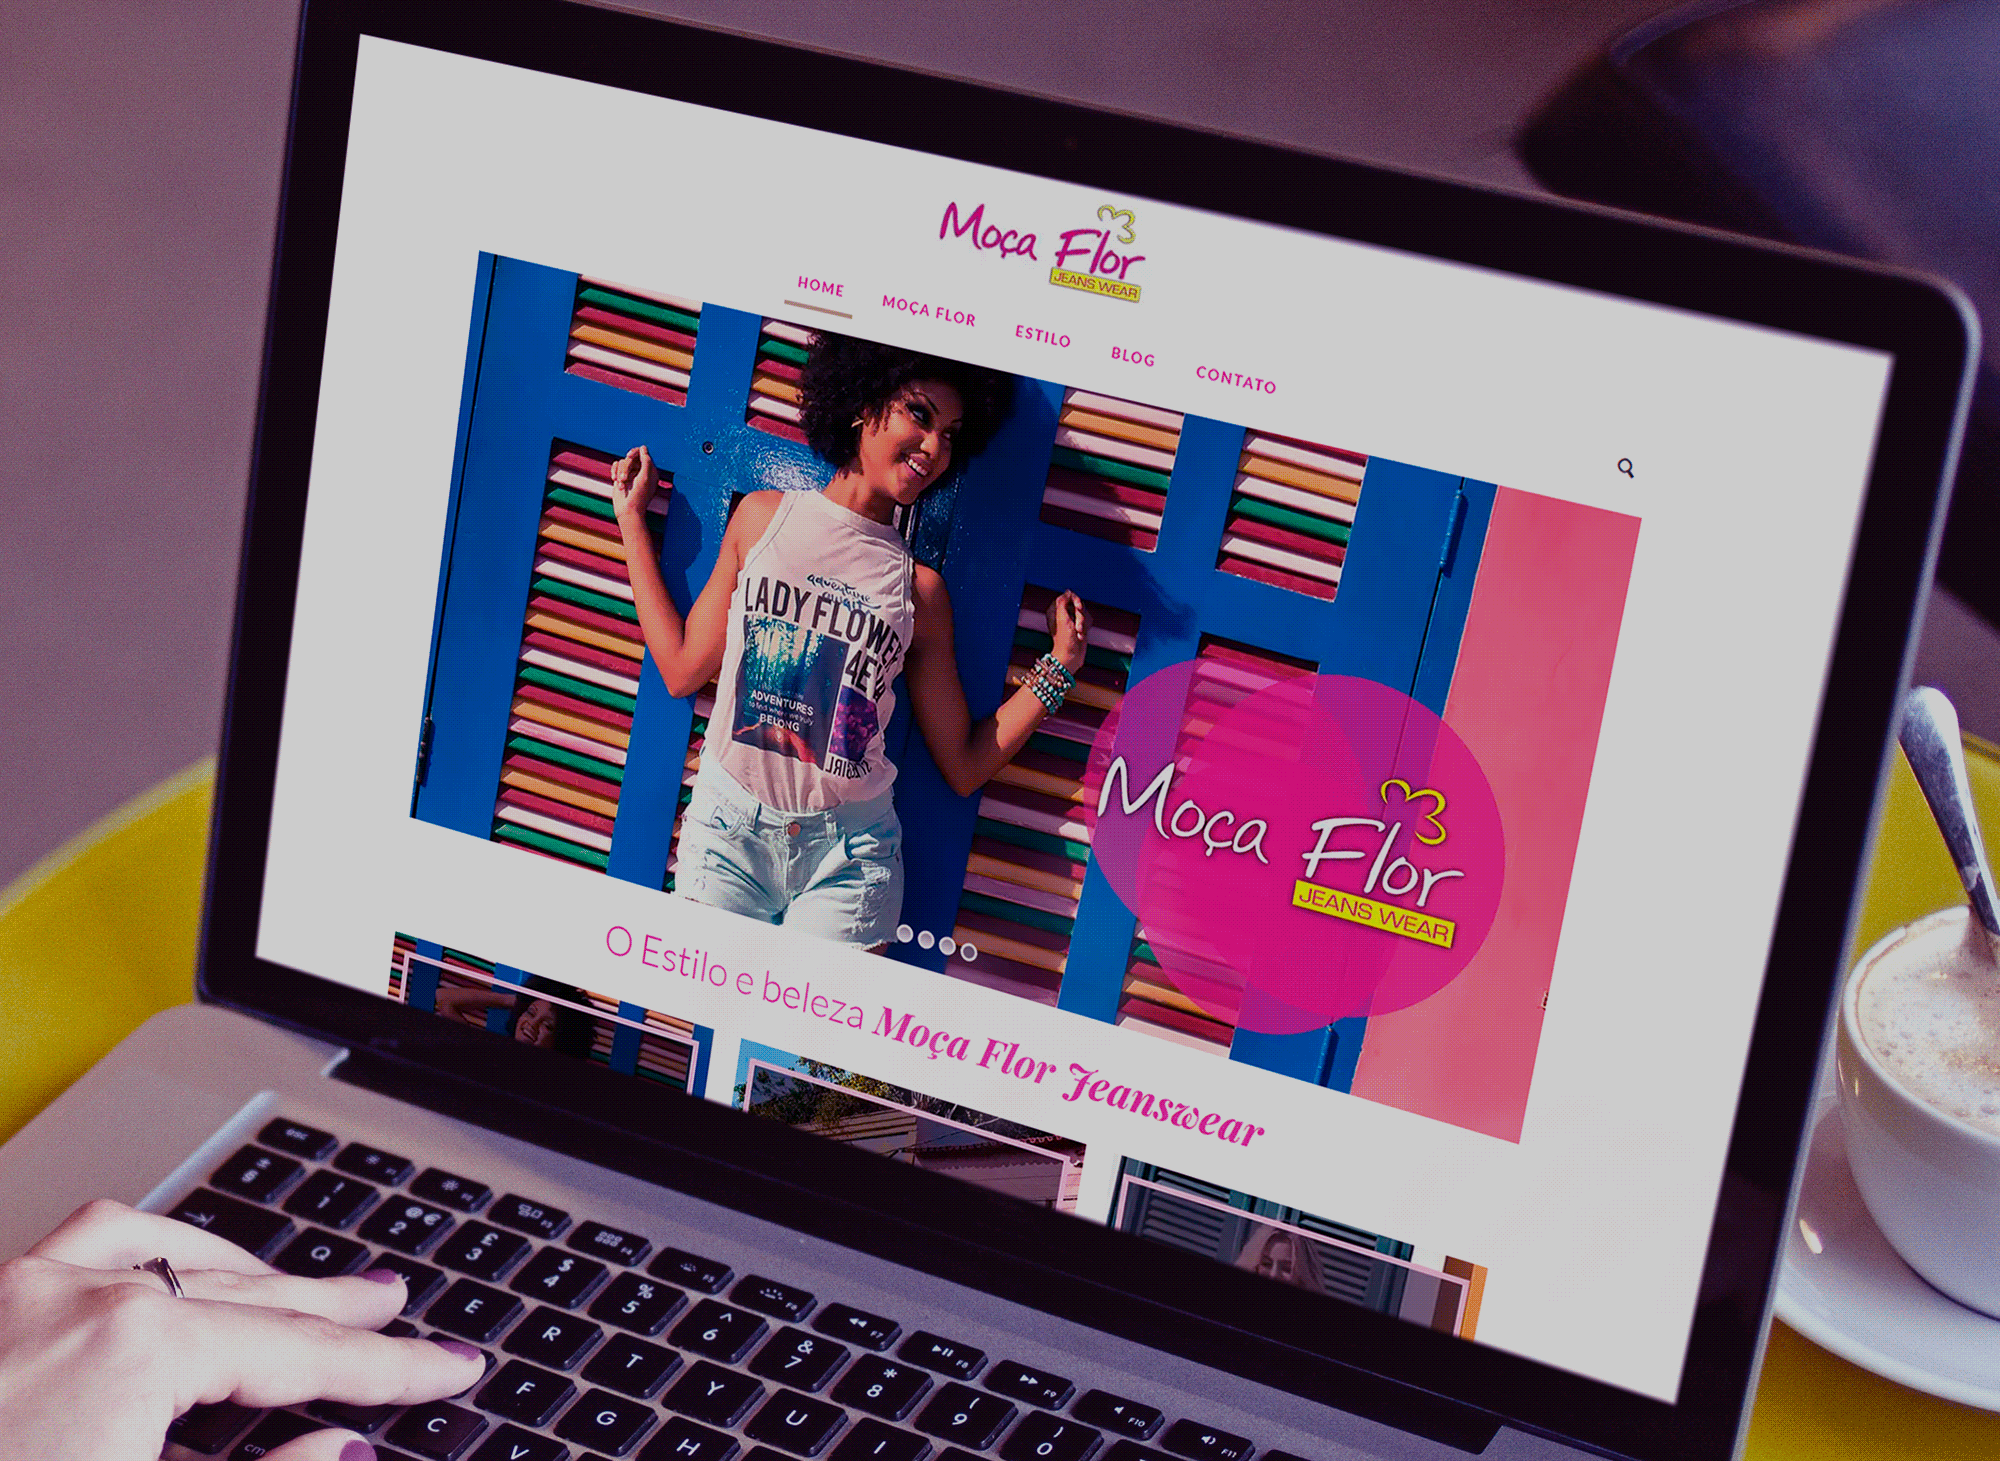 site-moca-flor-jeans-moda-feminina-agencia-diretriz-digital-marketing-fortaleza